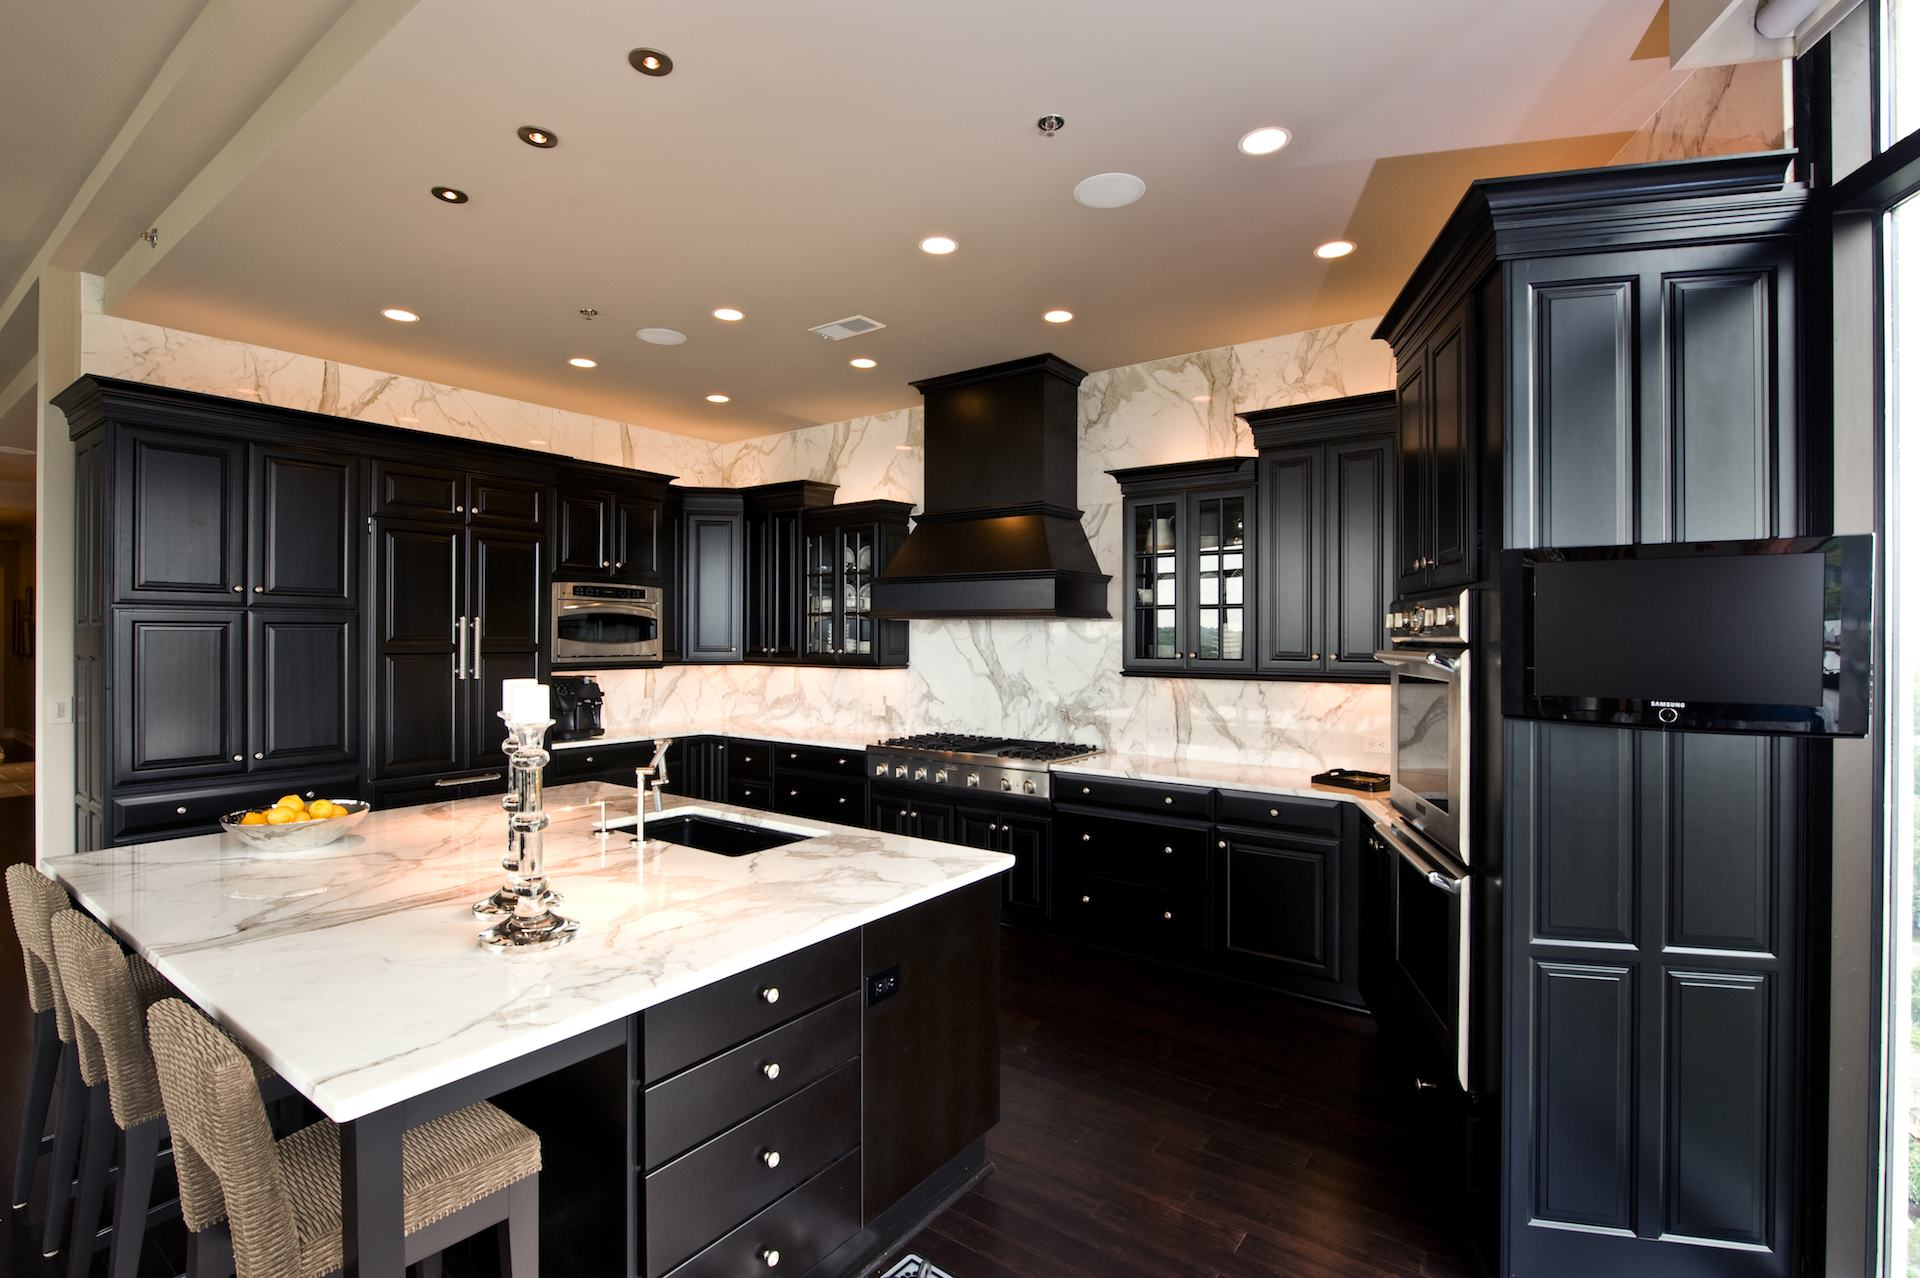 calacatta gold countertops and backsplash with black cabinets